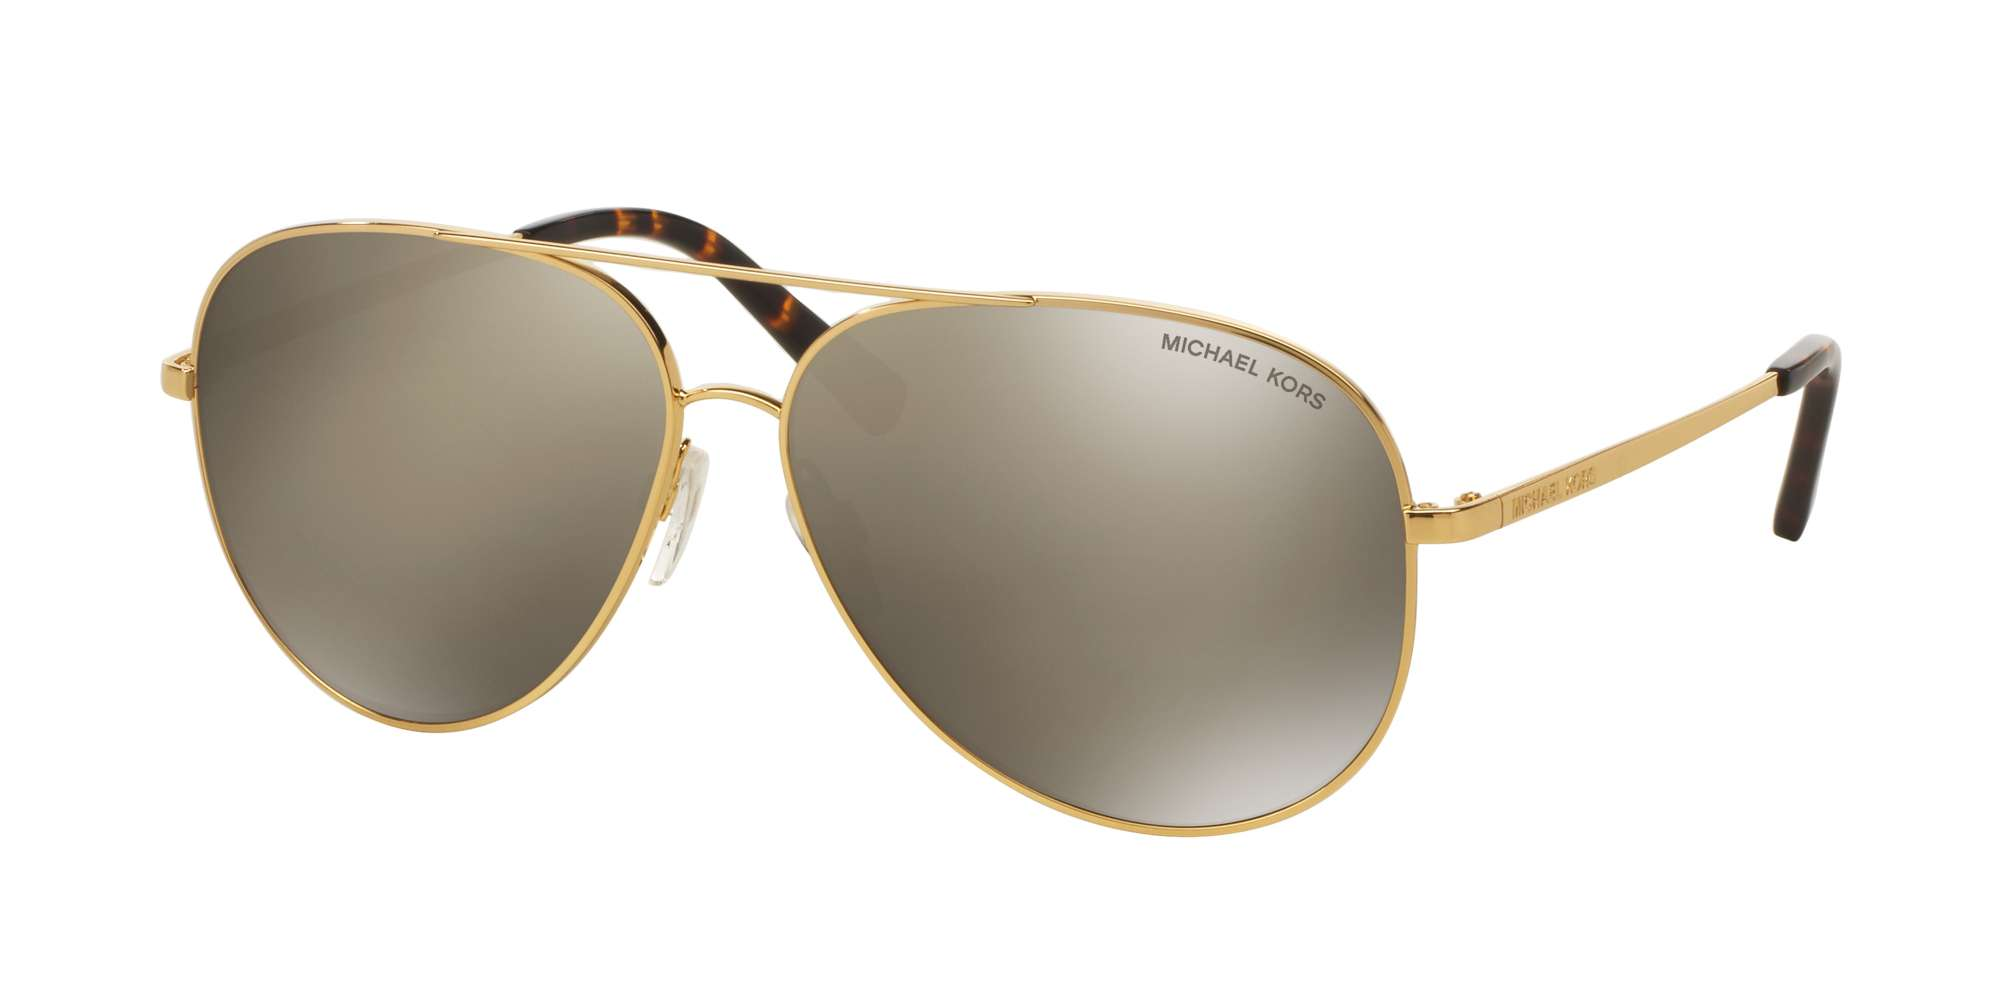 GOLD-TONE / BRONZE MIRROR lenses